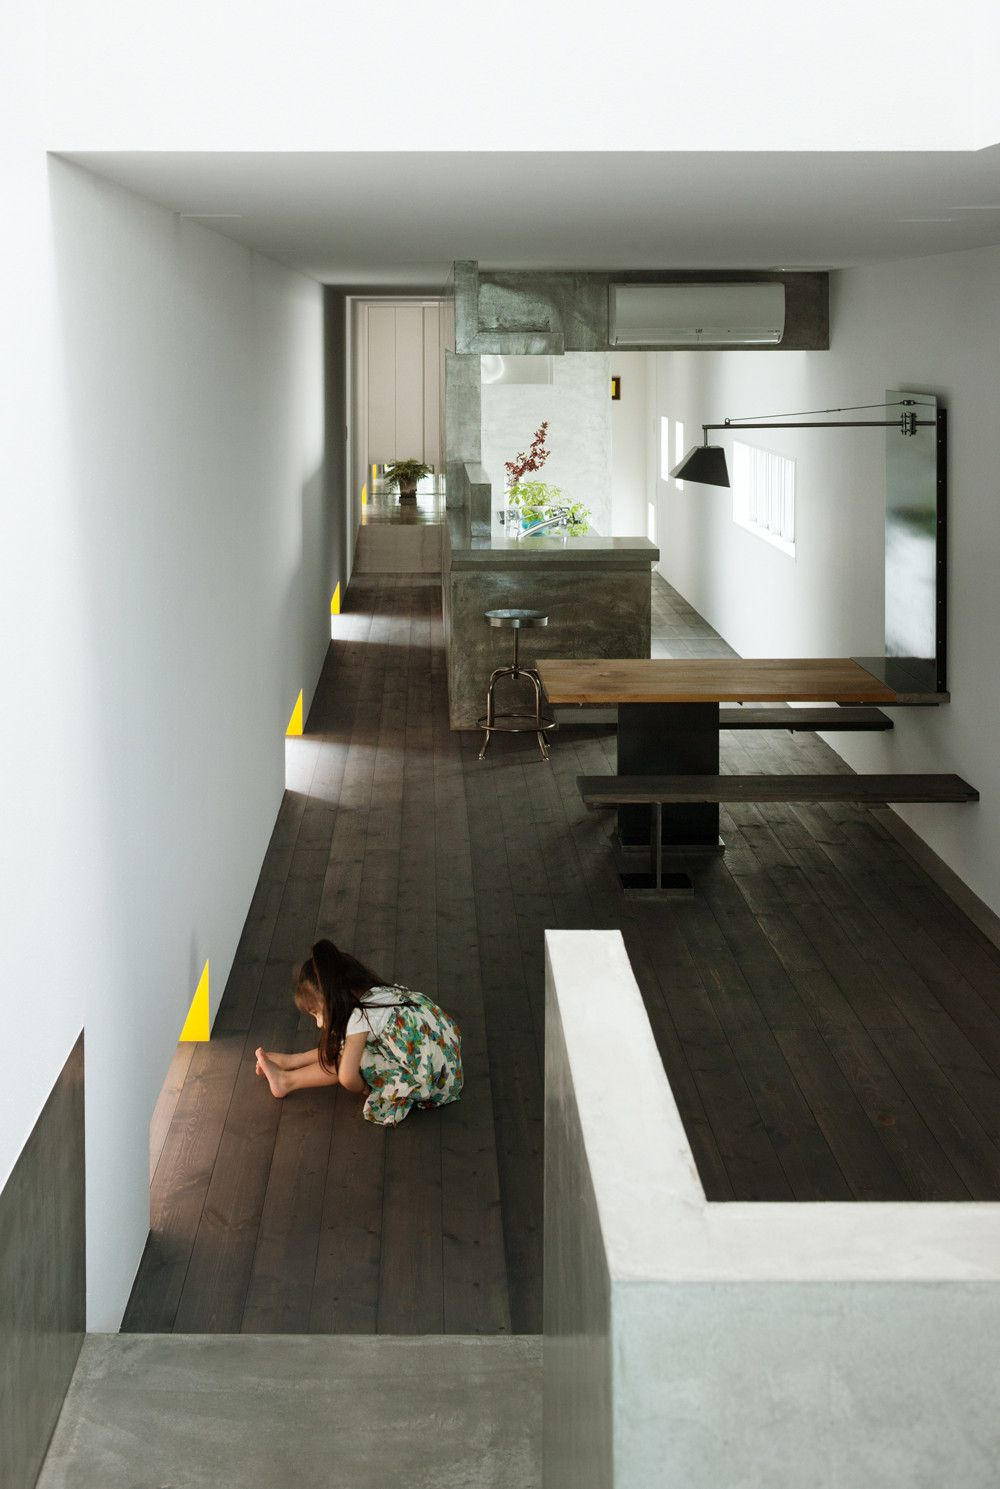 11 spectacular narrow houses and their ingenious design for Interior site